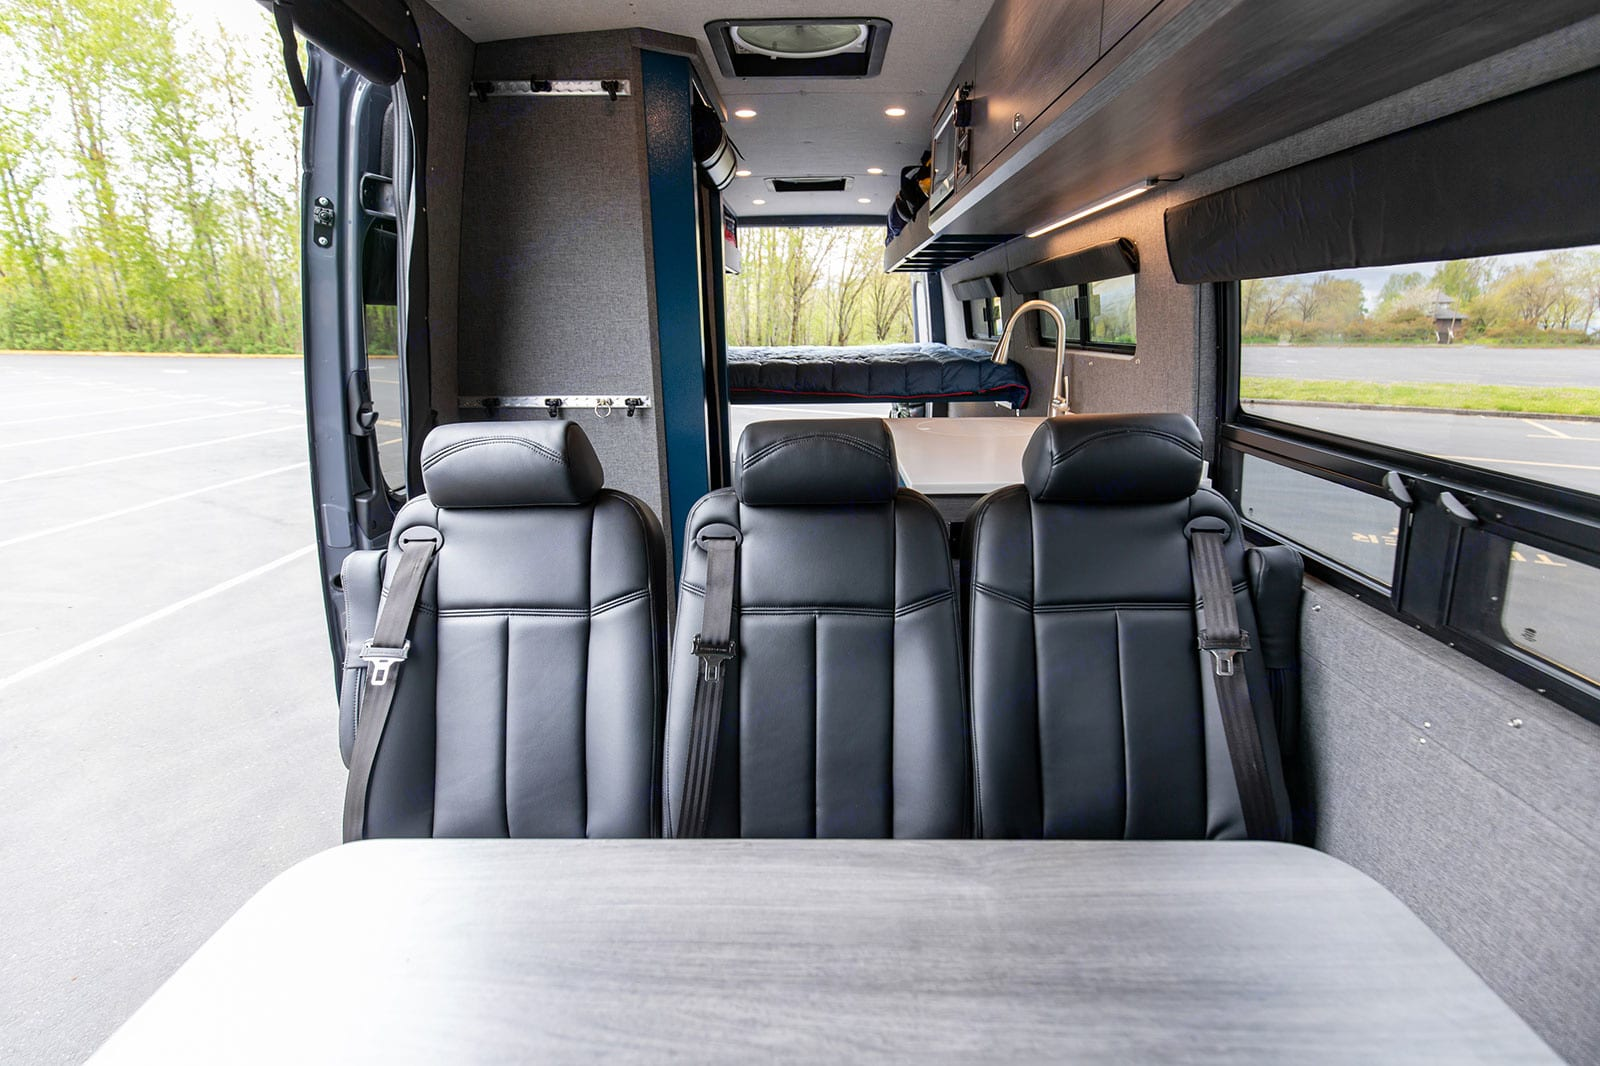 Load in the whole family in with seating and sleeping for up to 5!. Mercedes-Benz Sprinter 2019